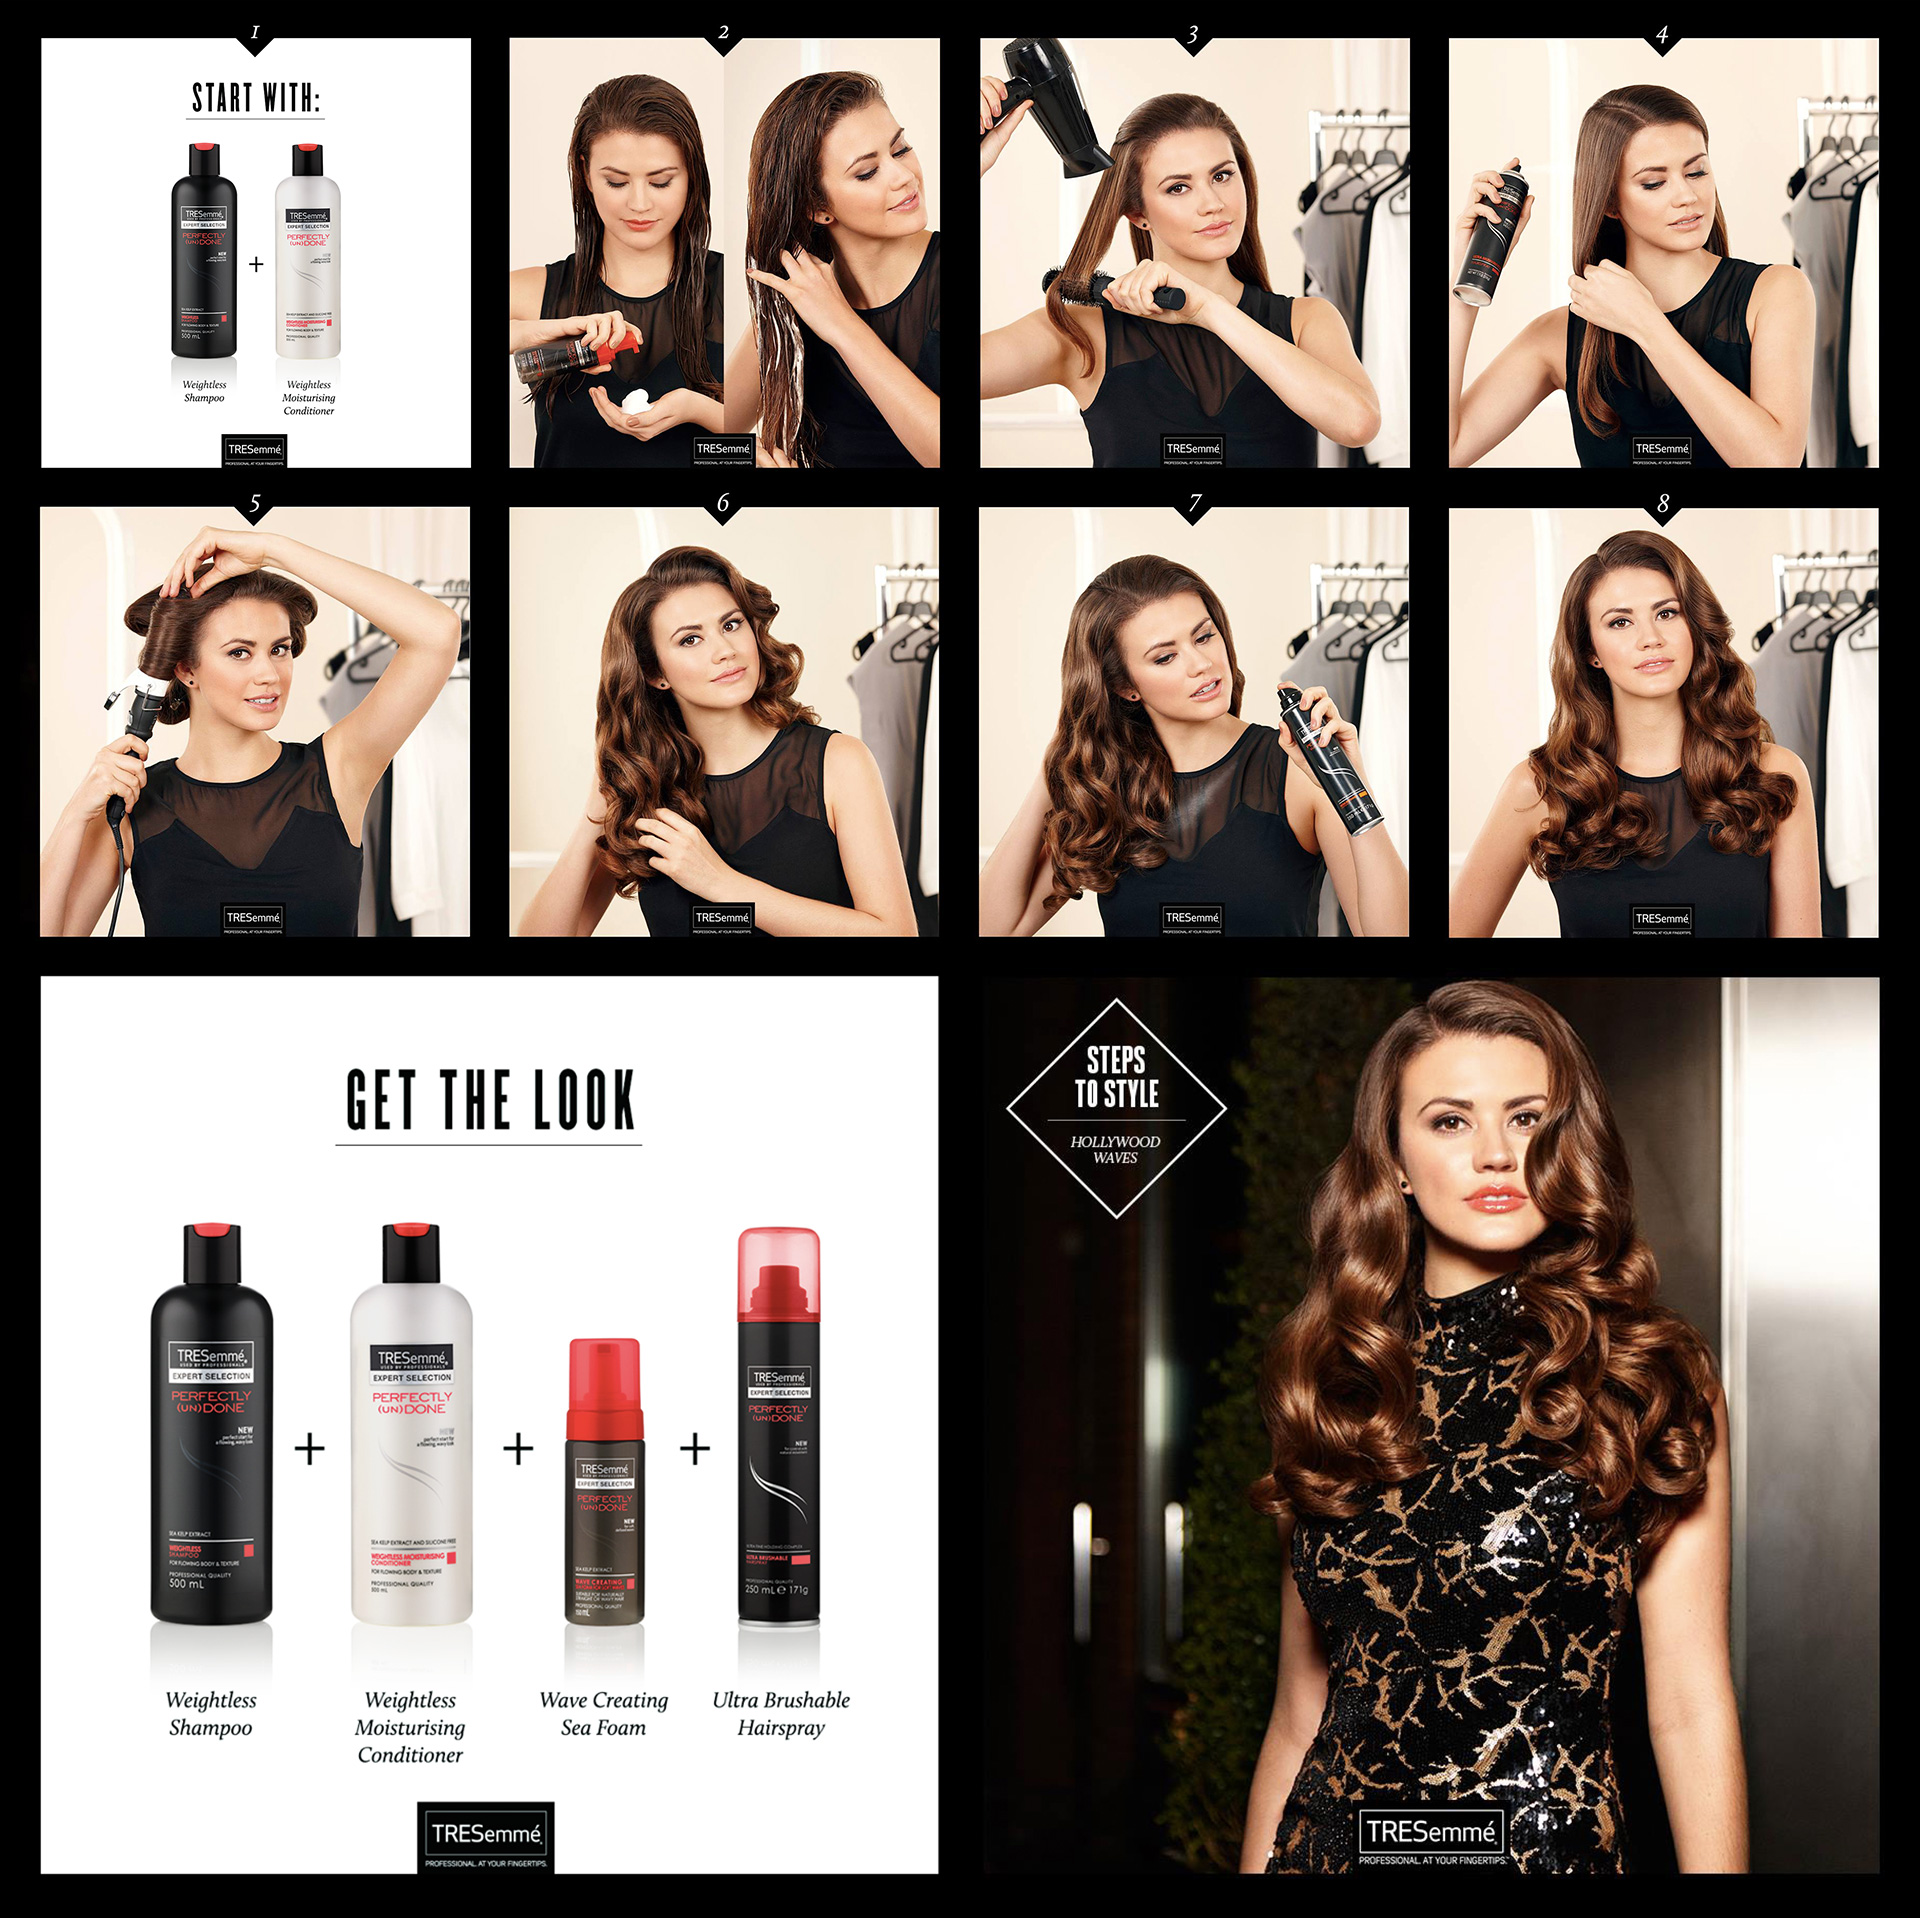 Tresemme styling grid